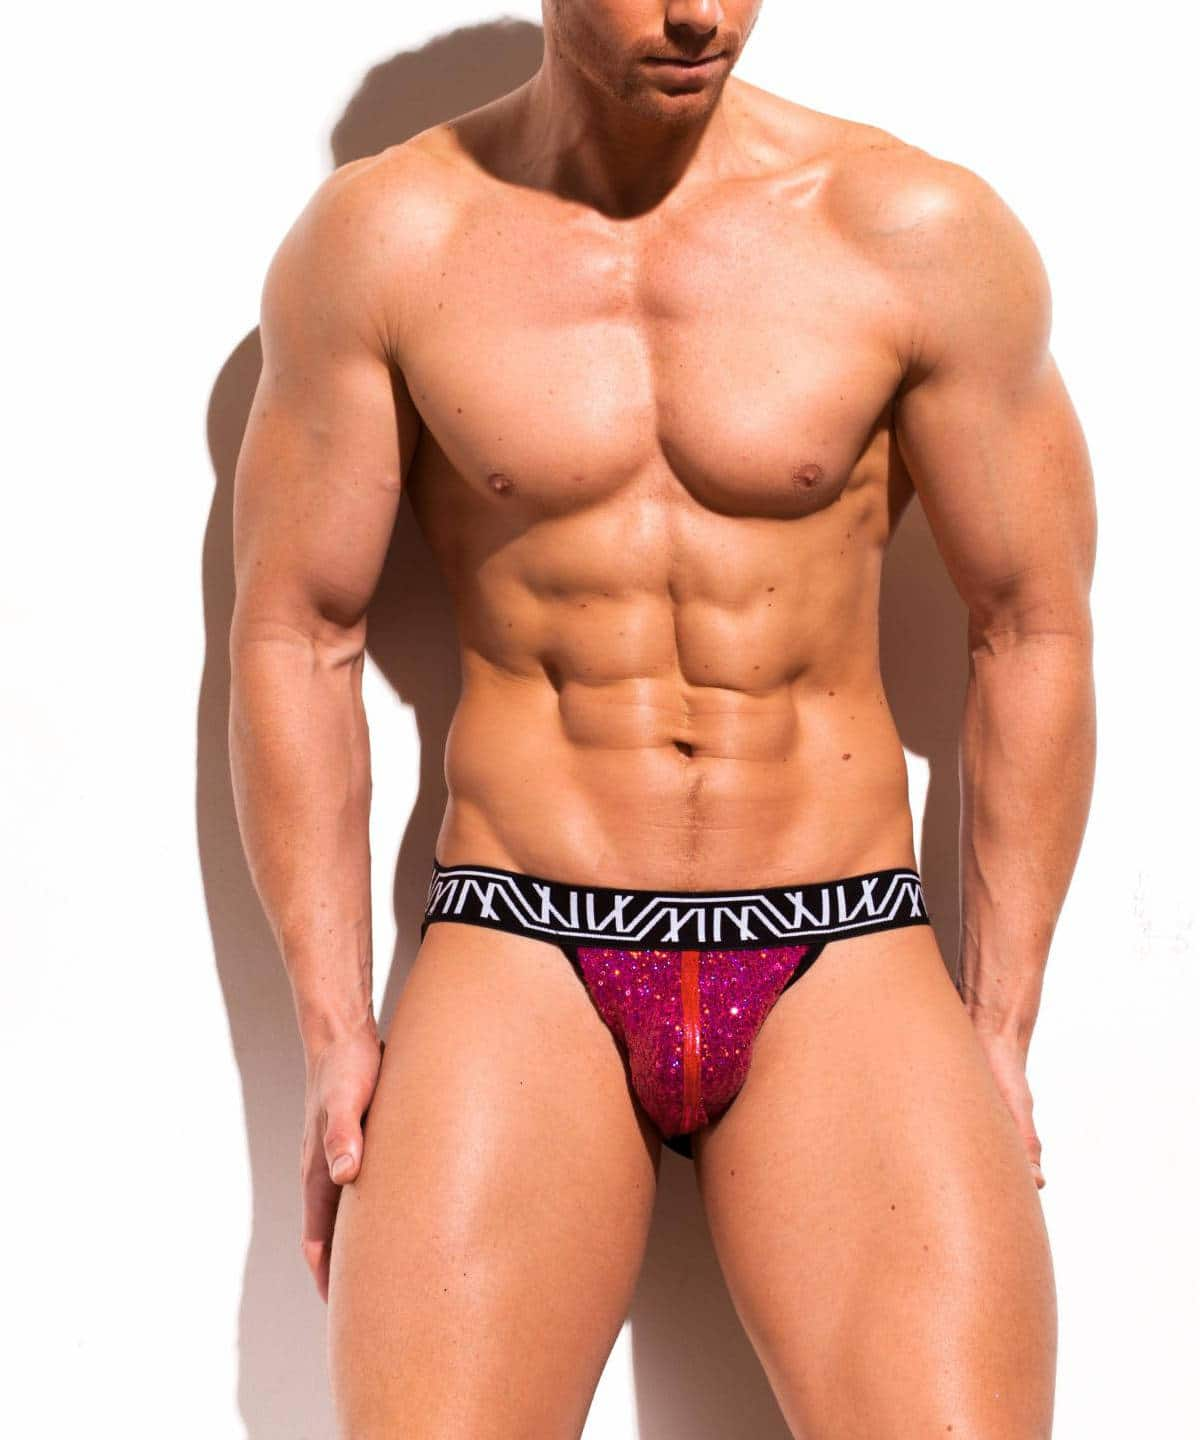 Male model wearing Marco Marco Pink Sequin Jock-Thong for men